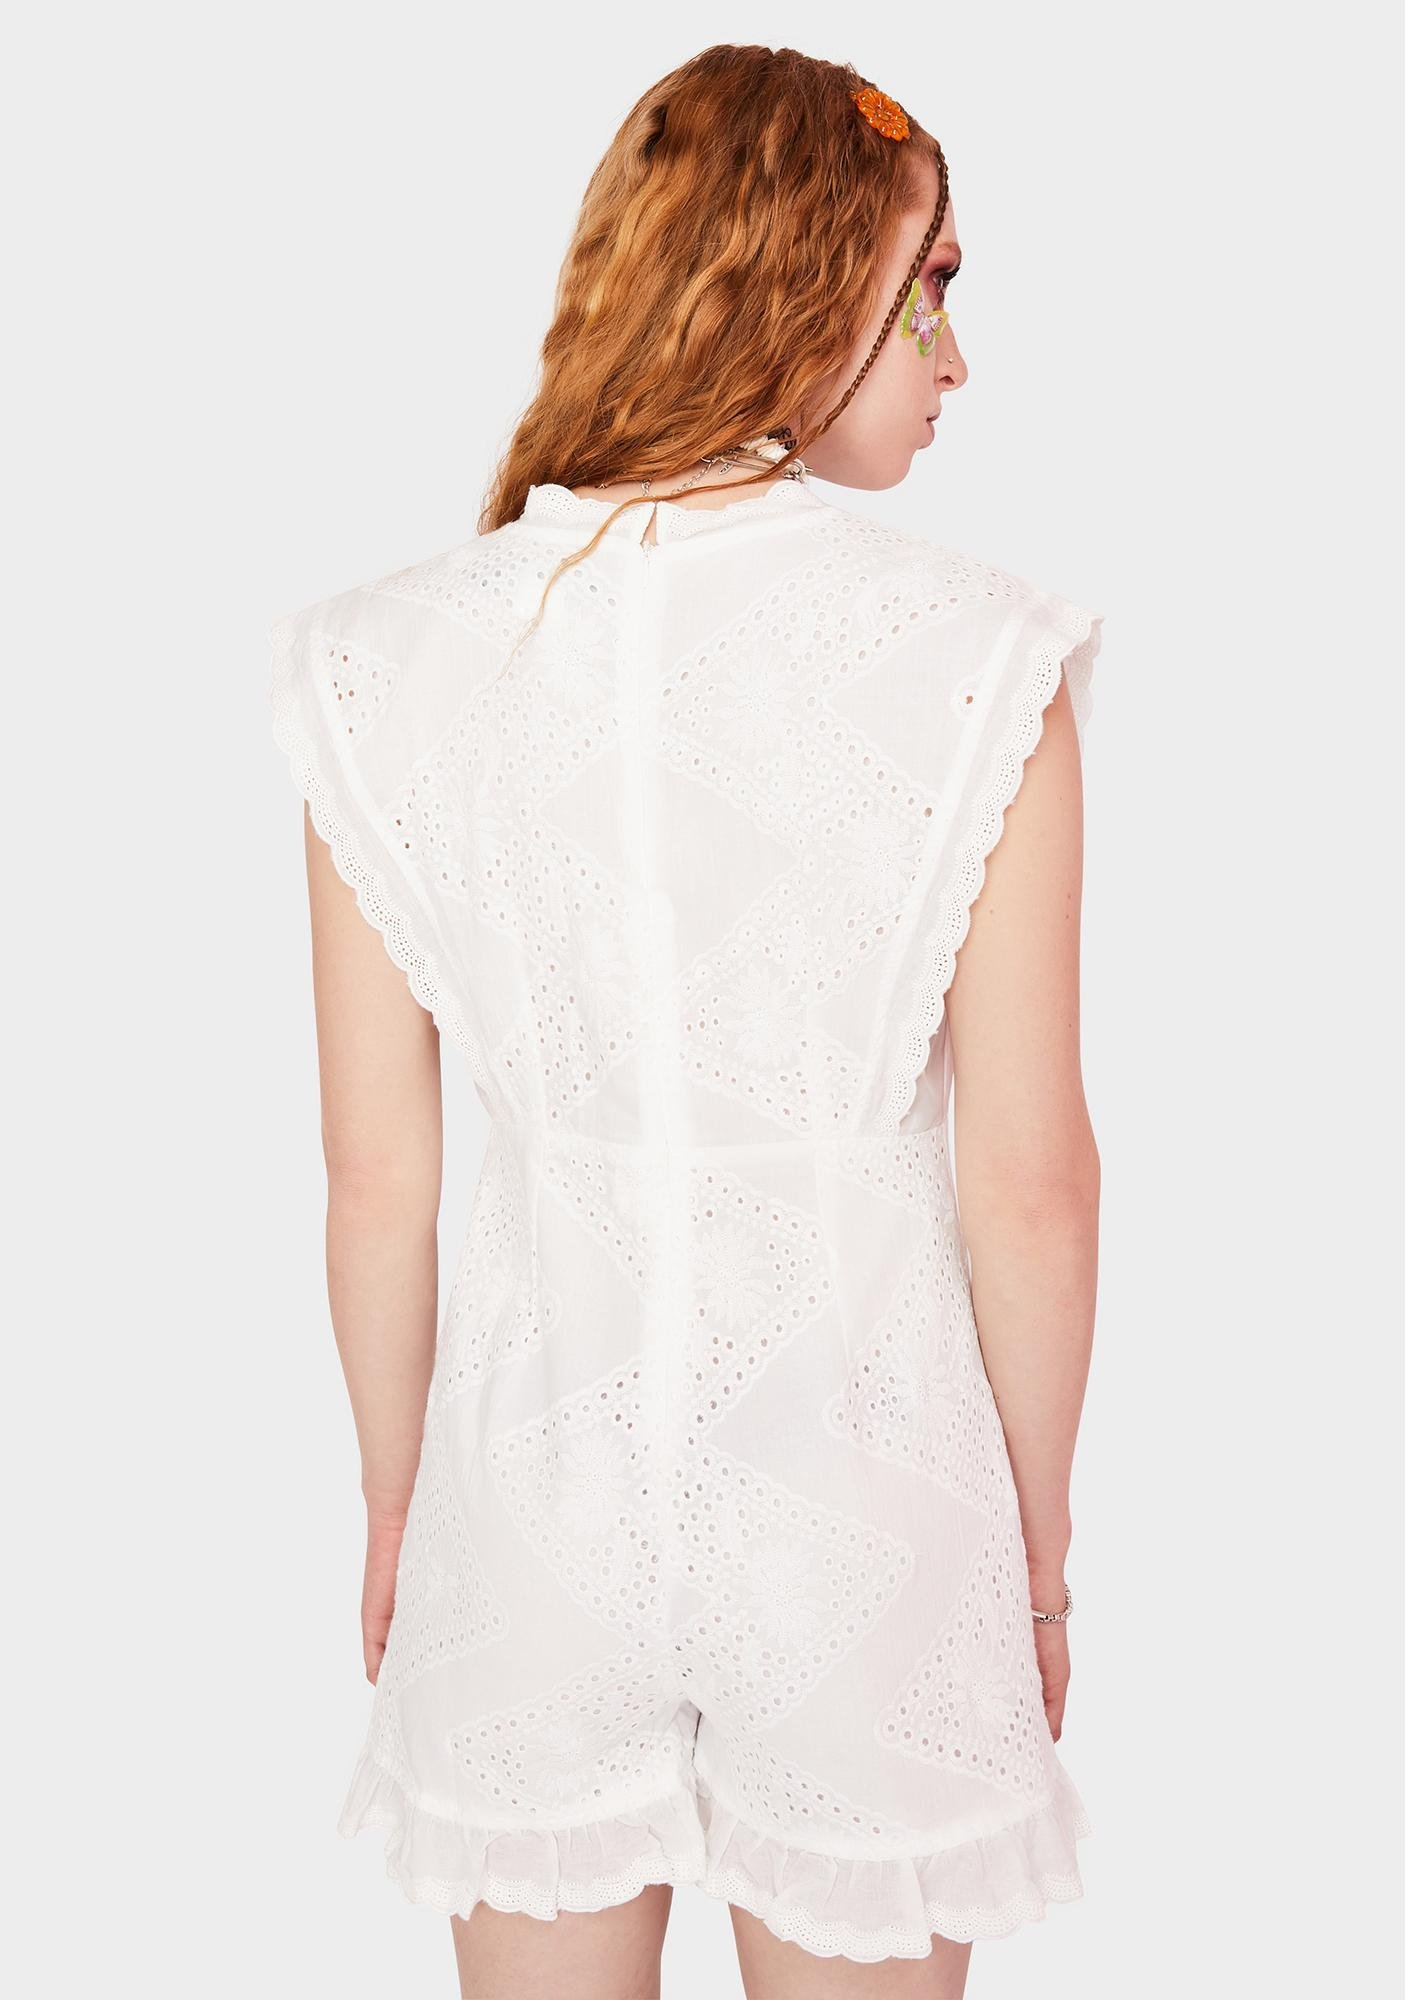 Daisy Street White Lace Button Down Playsuit